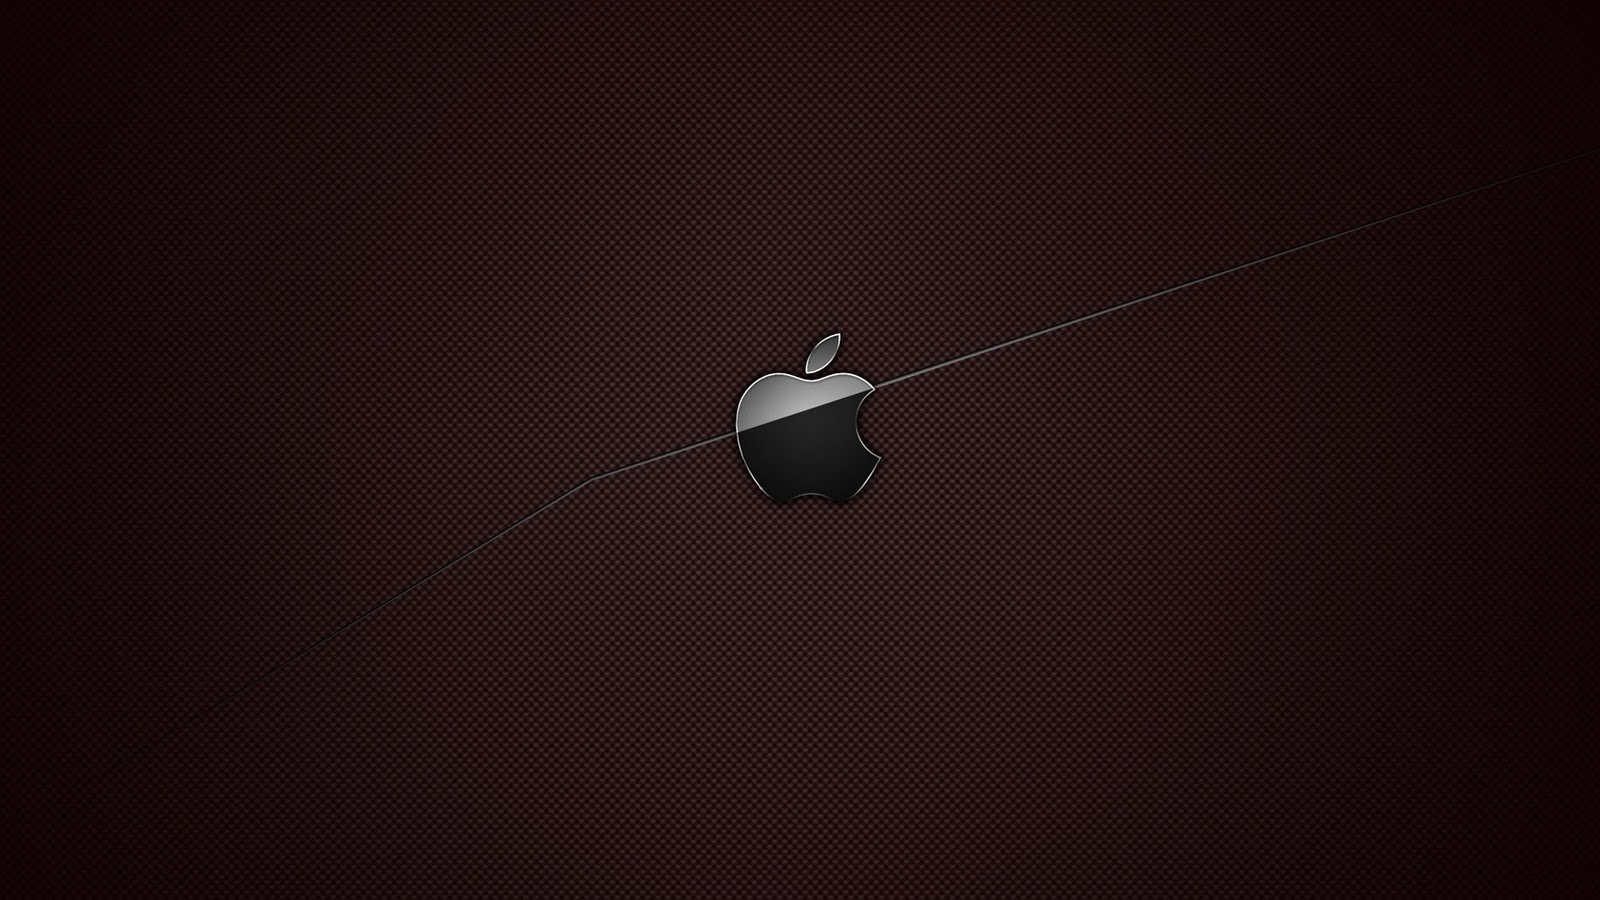 iPhone and iPad Wallpapers and Pictures Desktop Backgrounds 1600x900